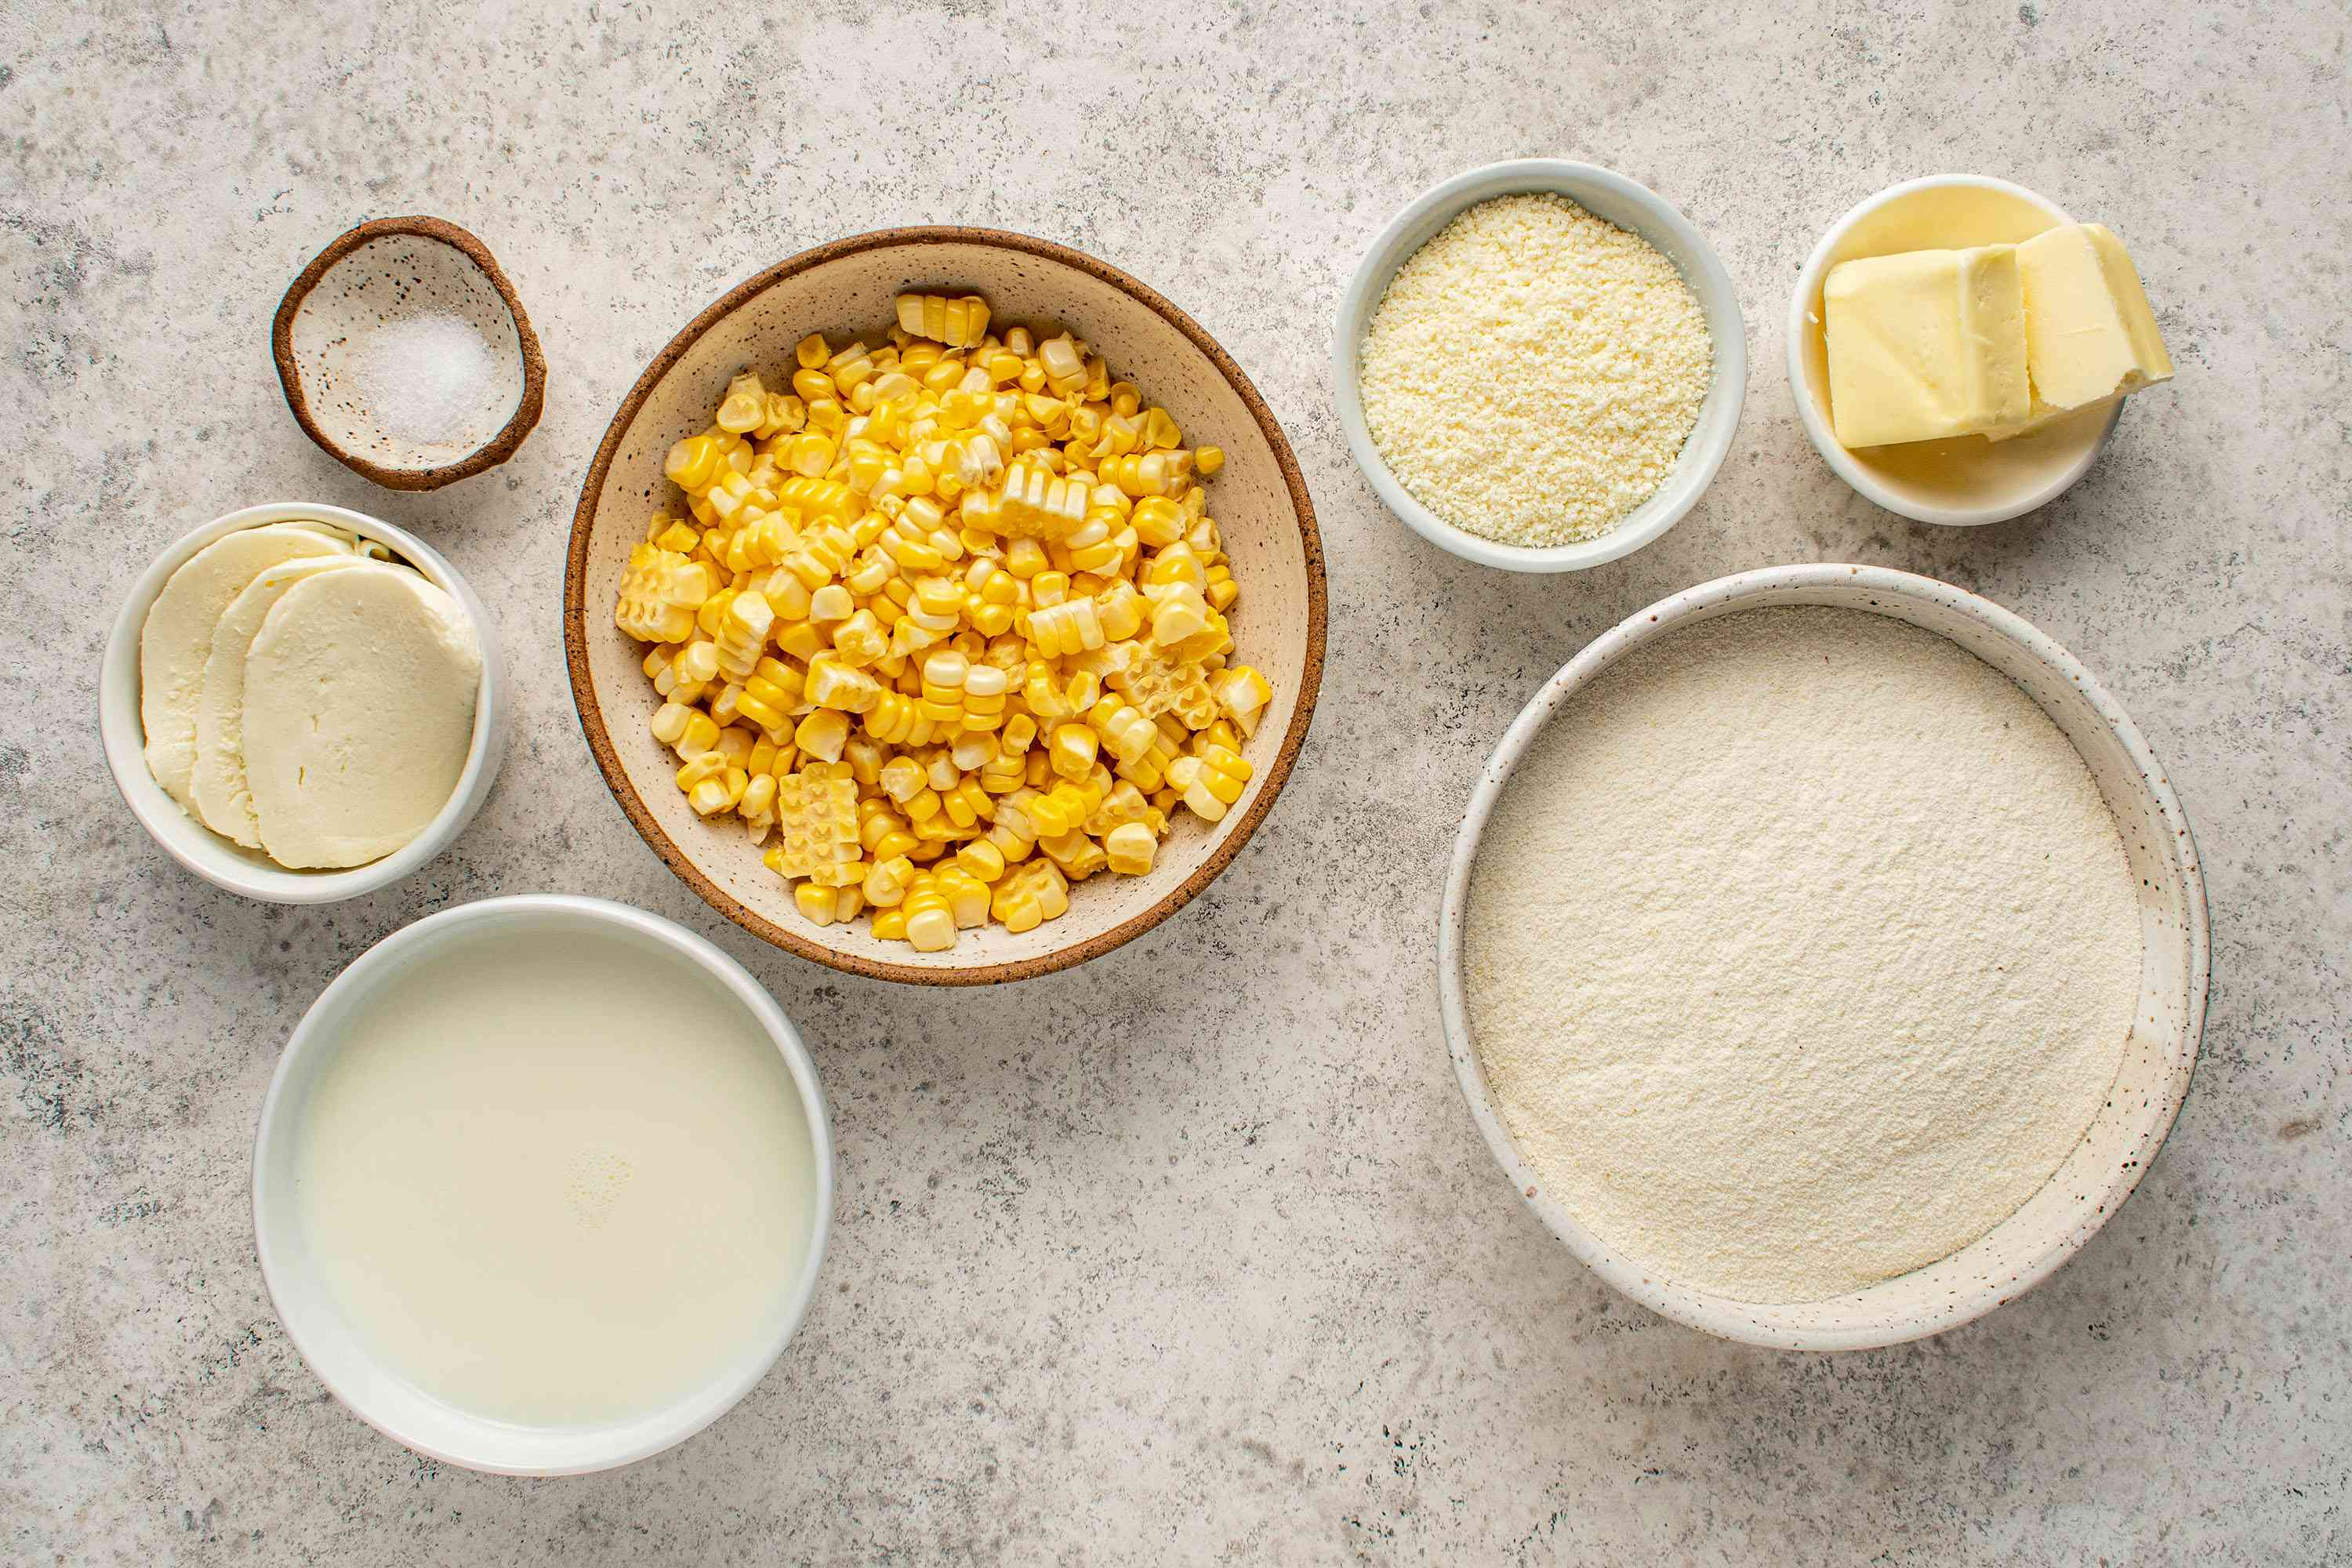 Arepas de Choclo (Sweet Corn Cakes With Cheese) ingredients